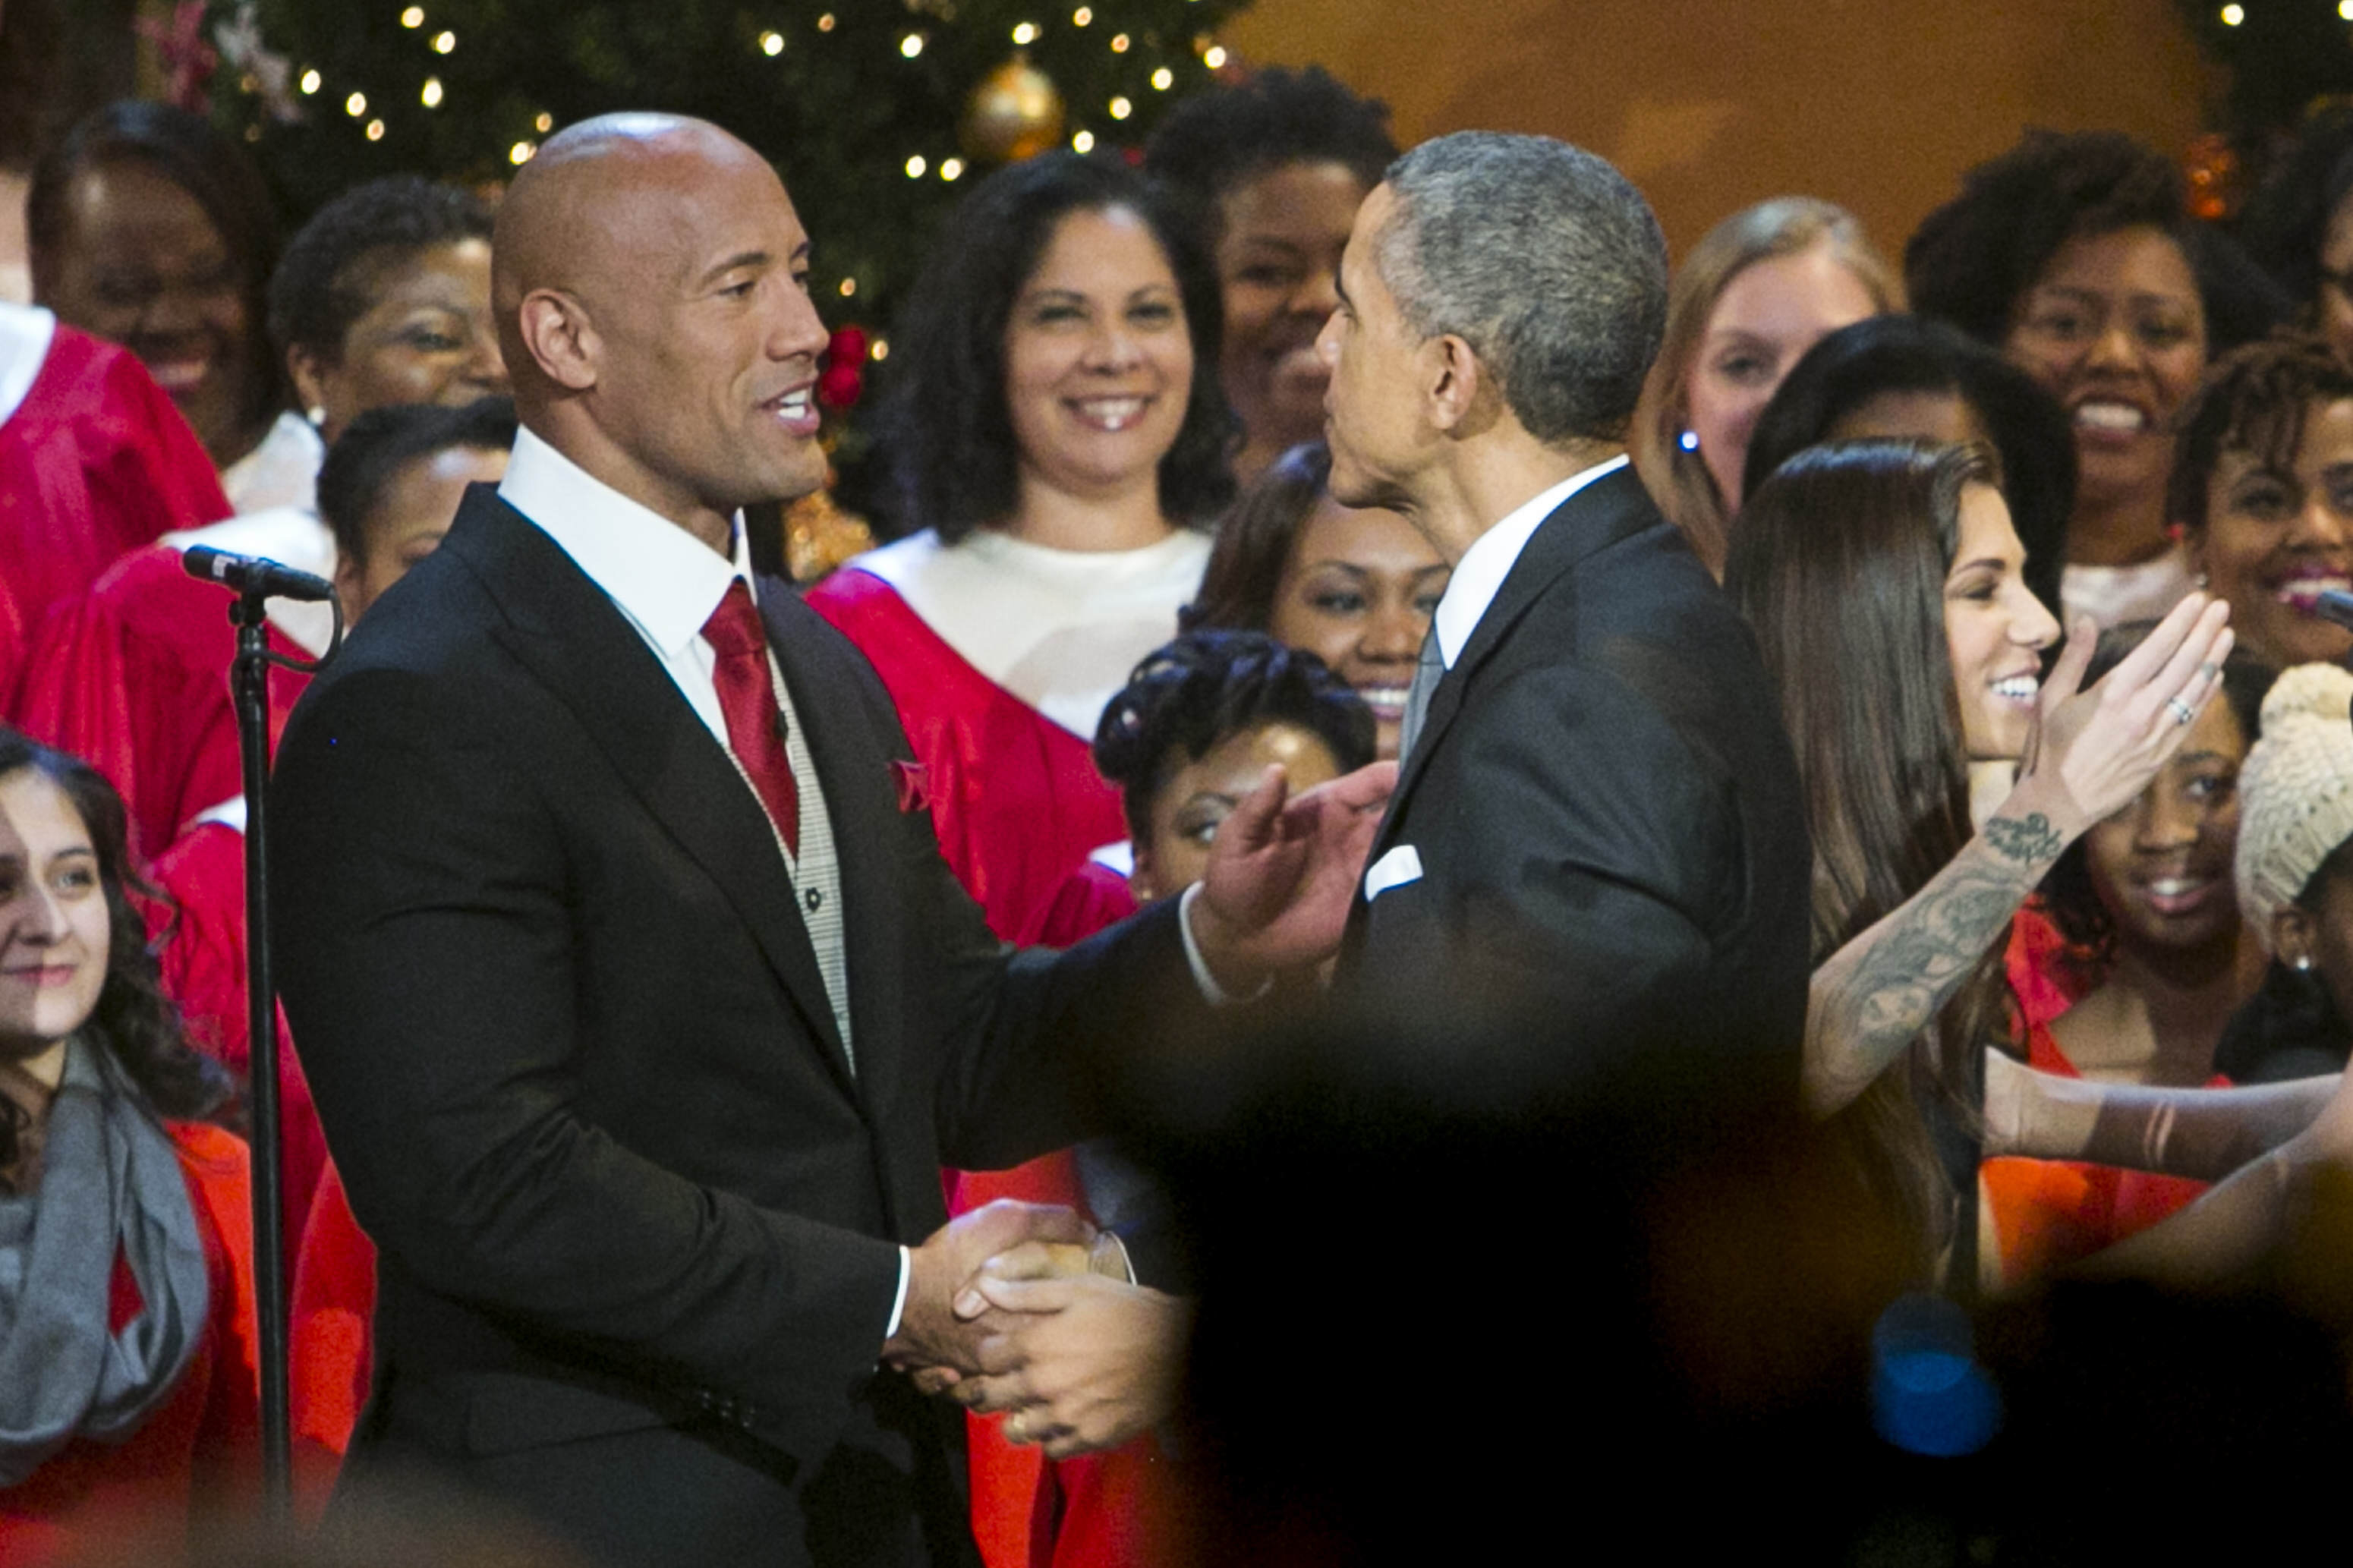 GettyImages 460472958 The Rock Considers Running For President, World Rejoices